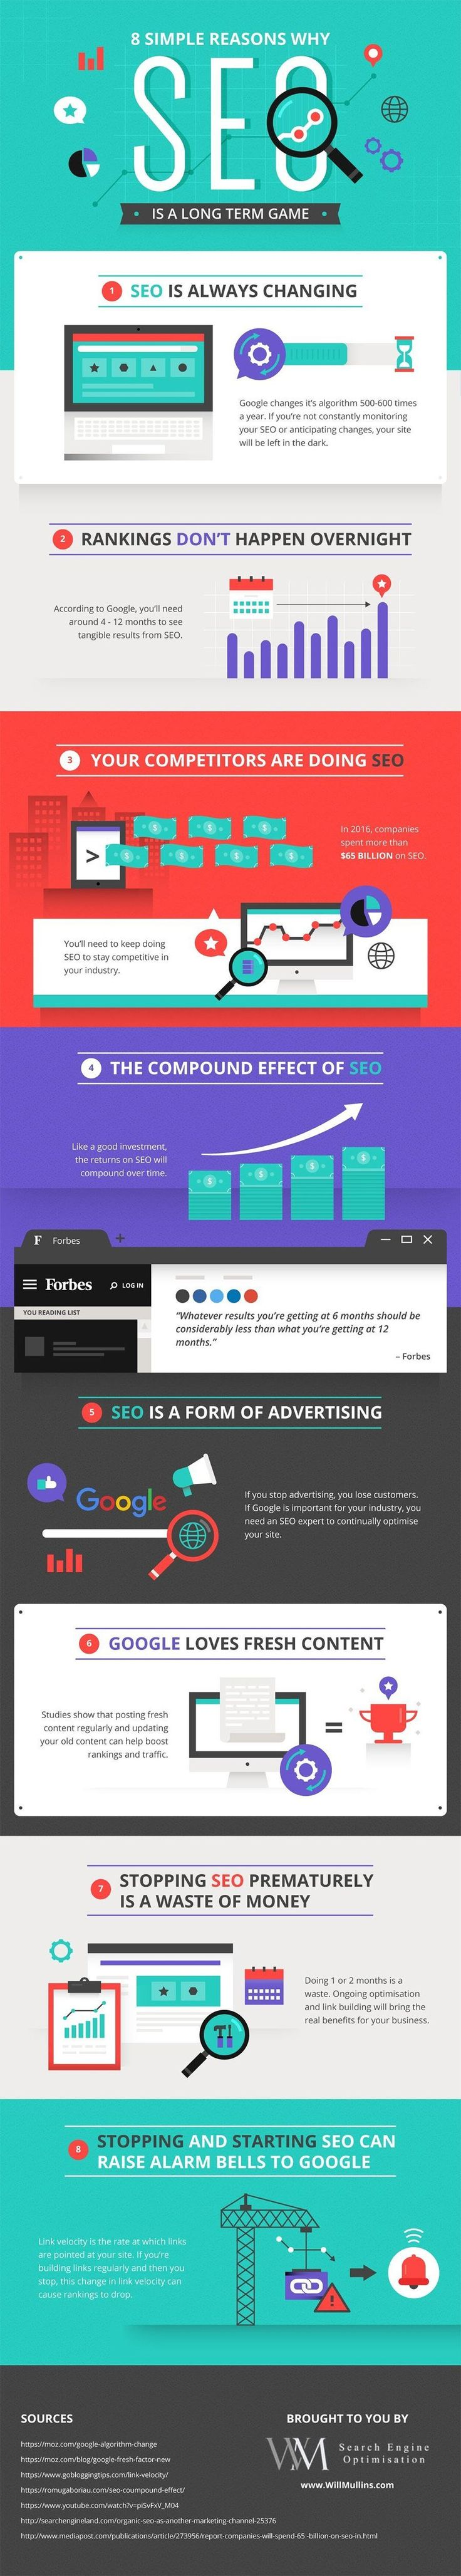 How Long Does SEO Take? 8 Reasons Why You Should Commit Long-Term [Infographic] | Social Media Today #InfographicsSocialMedia